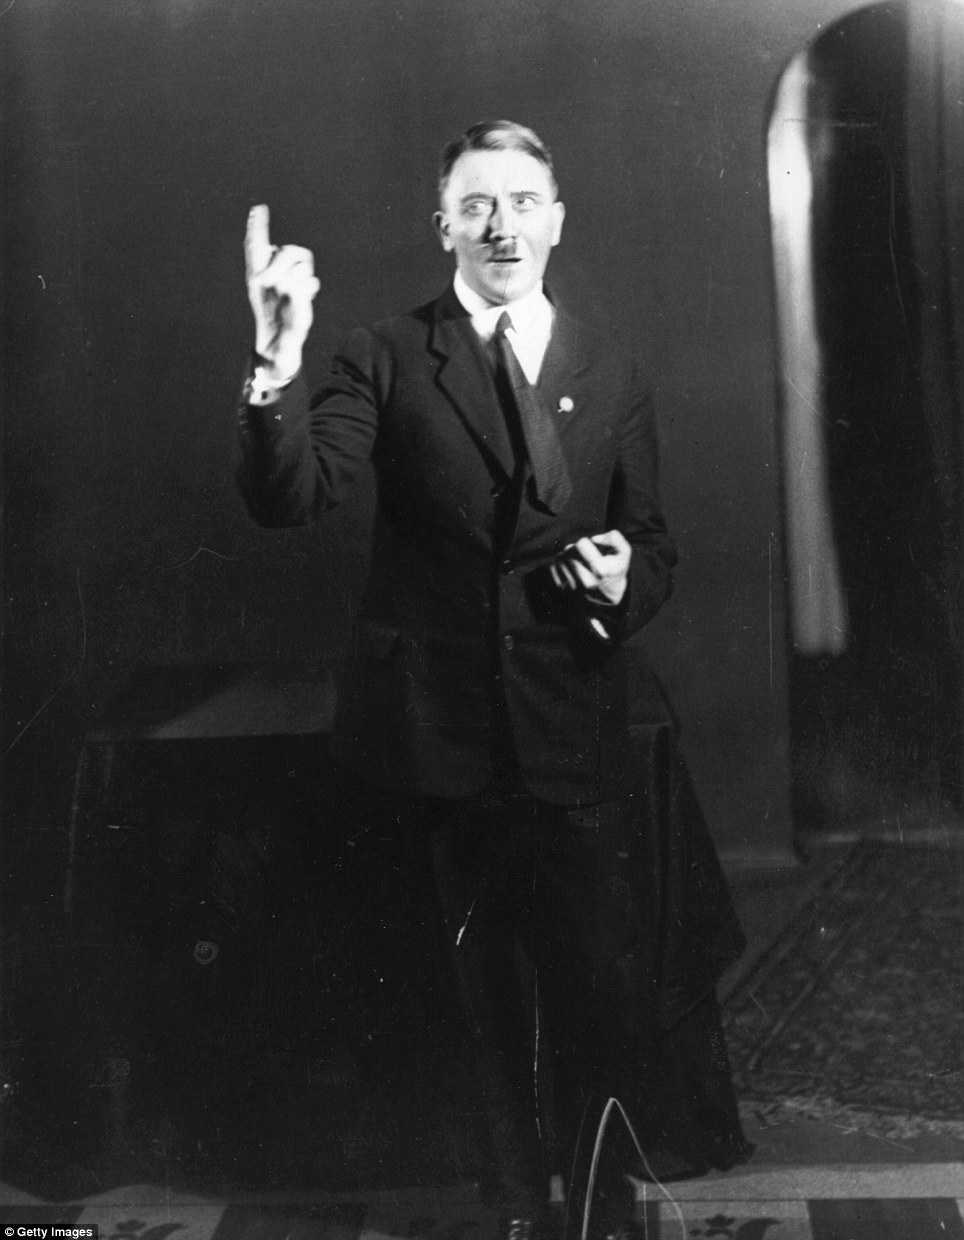 With an intense gaze, Hitler makes a point to an imaginary audience as he rehearses a speech